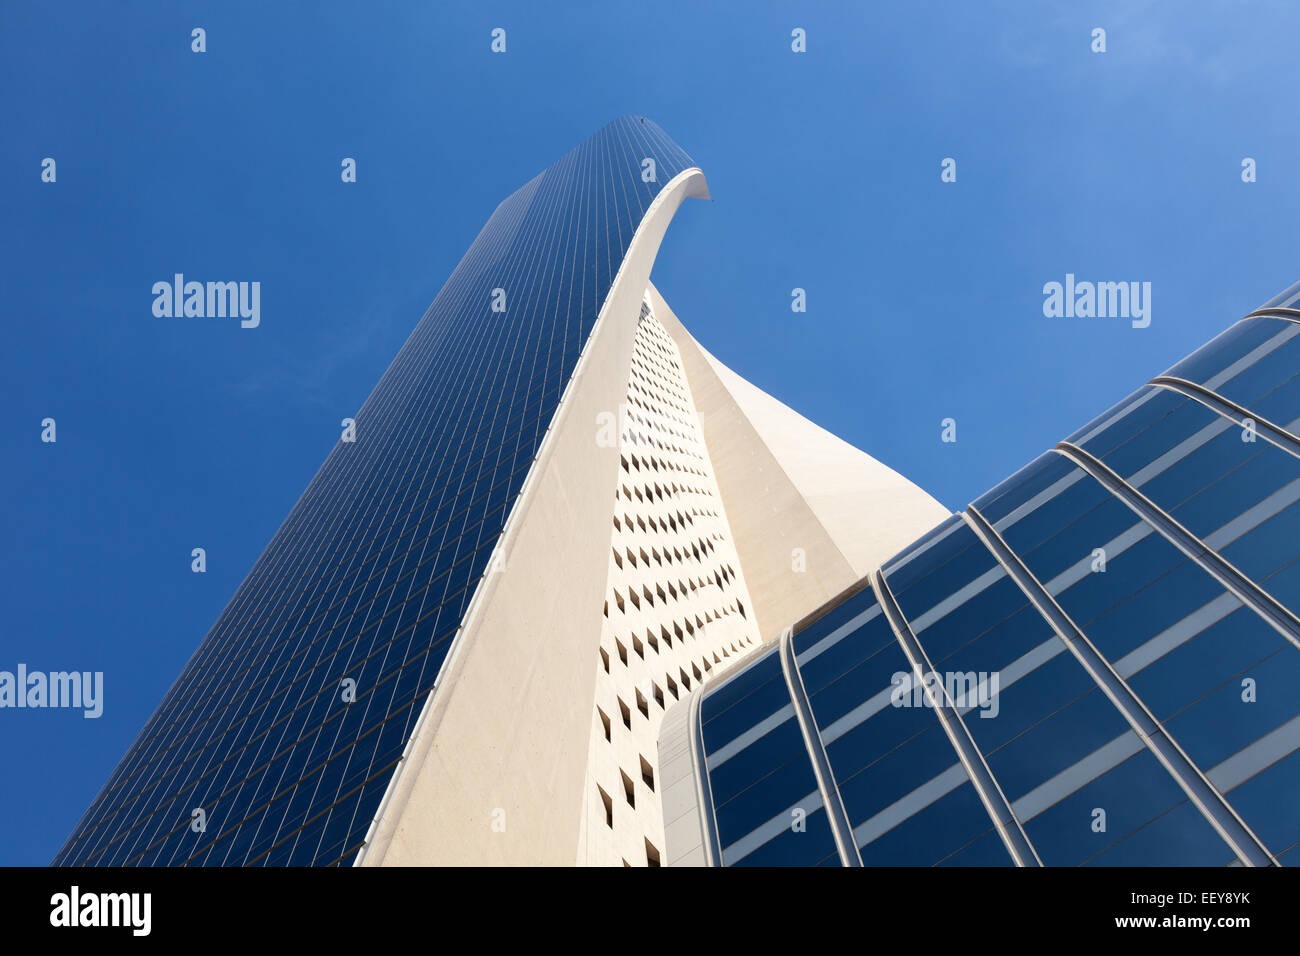 The Al Hamra Tower in Kuwait. The Tower is a  413 m skyscraper in Kuwait City. - Stock Image